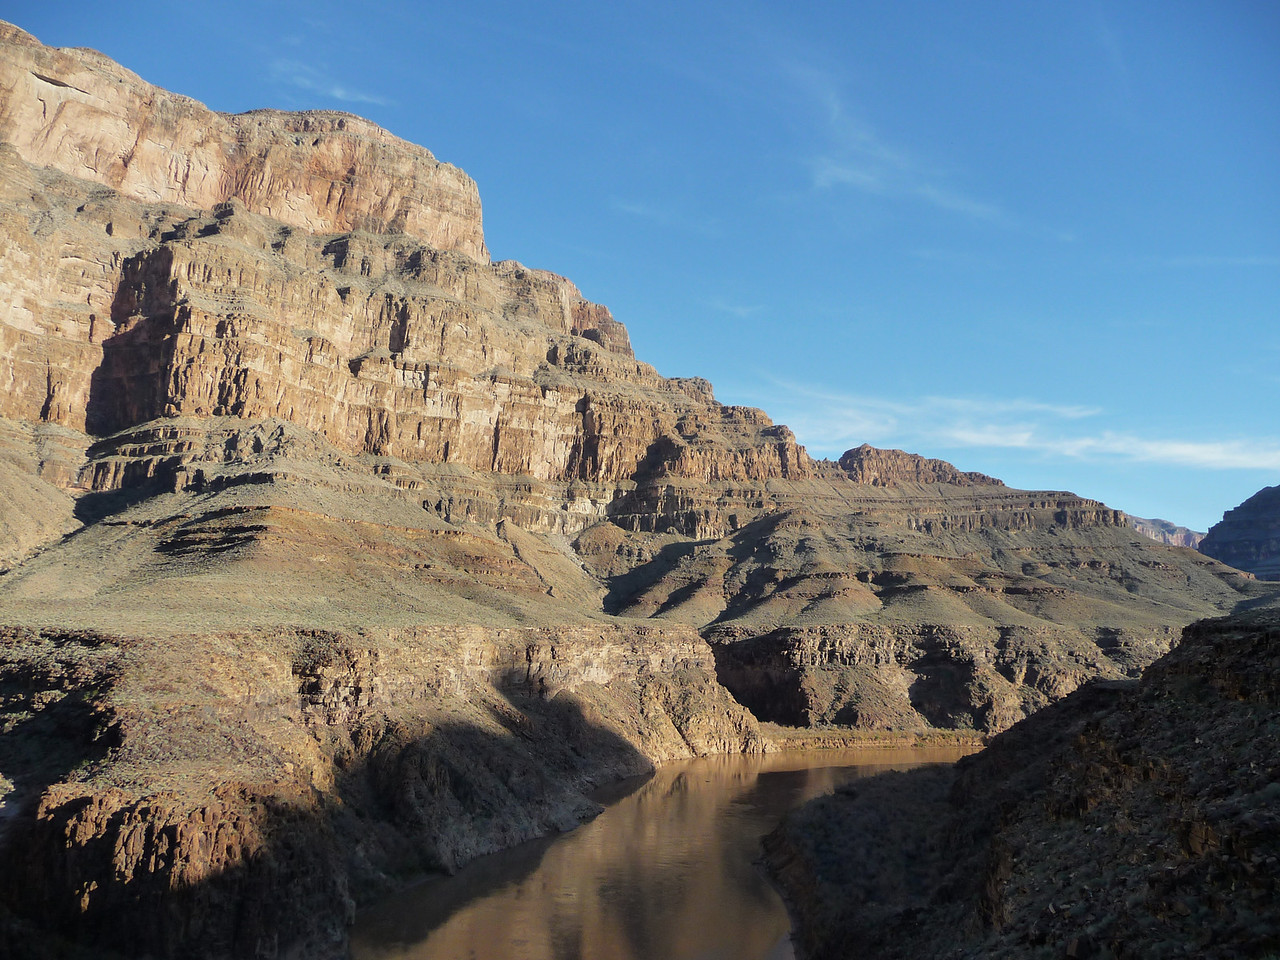 This shot was taken as we were flying right above the Colorado River in the canyon.